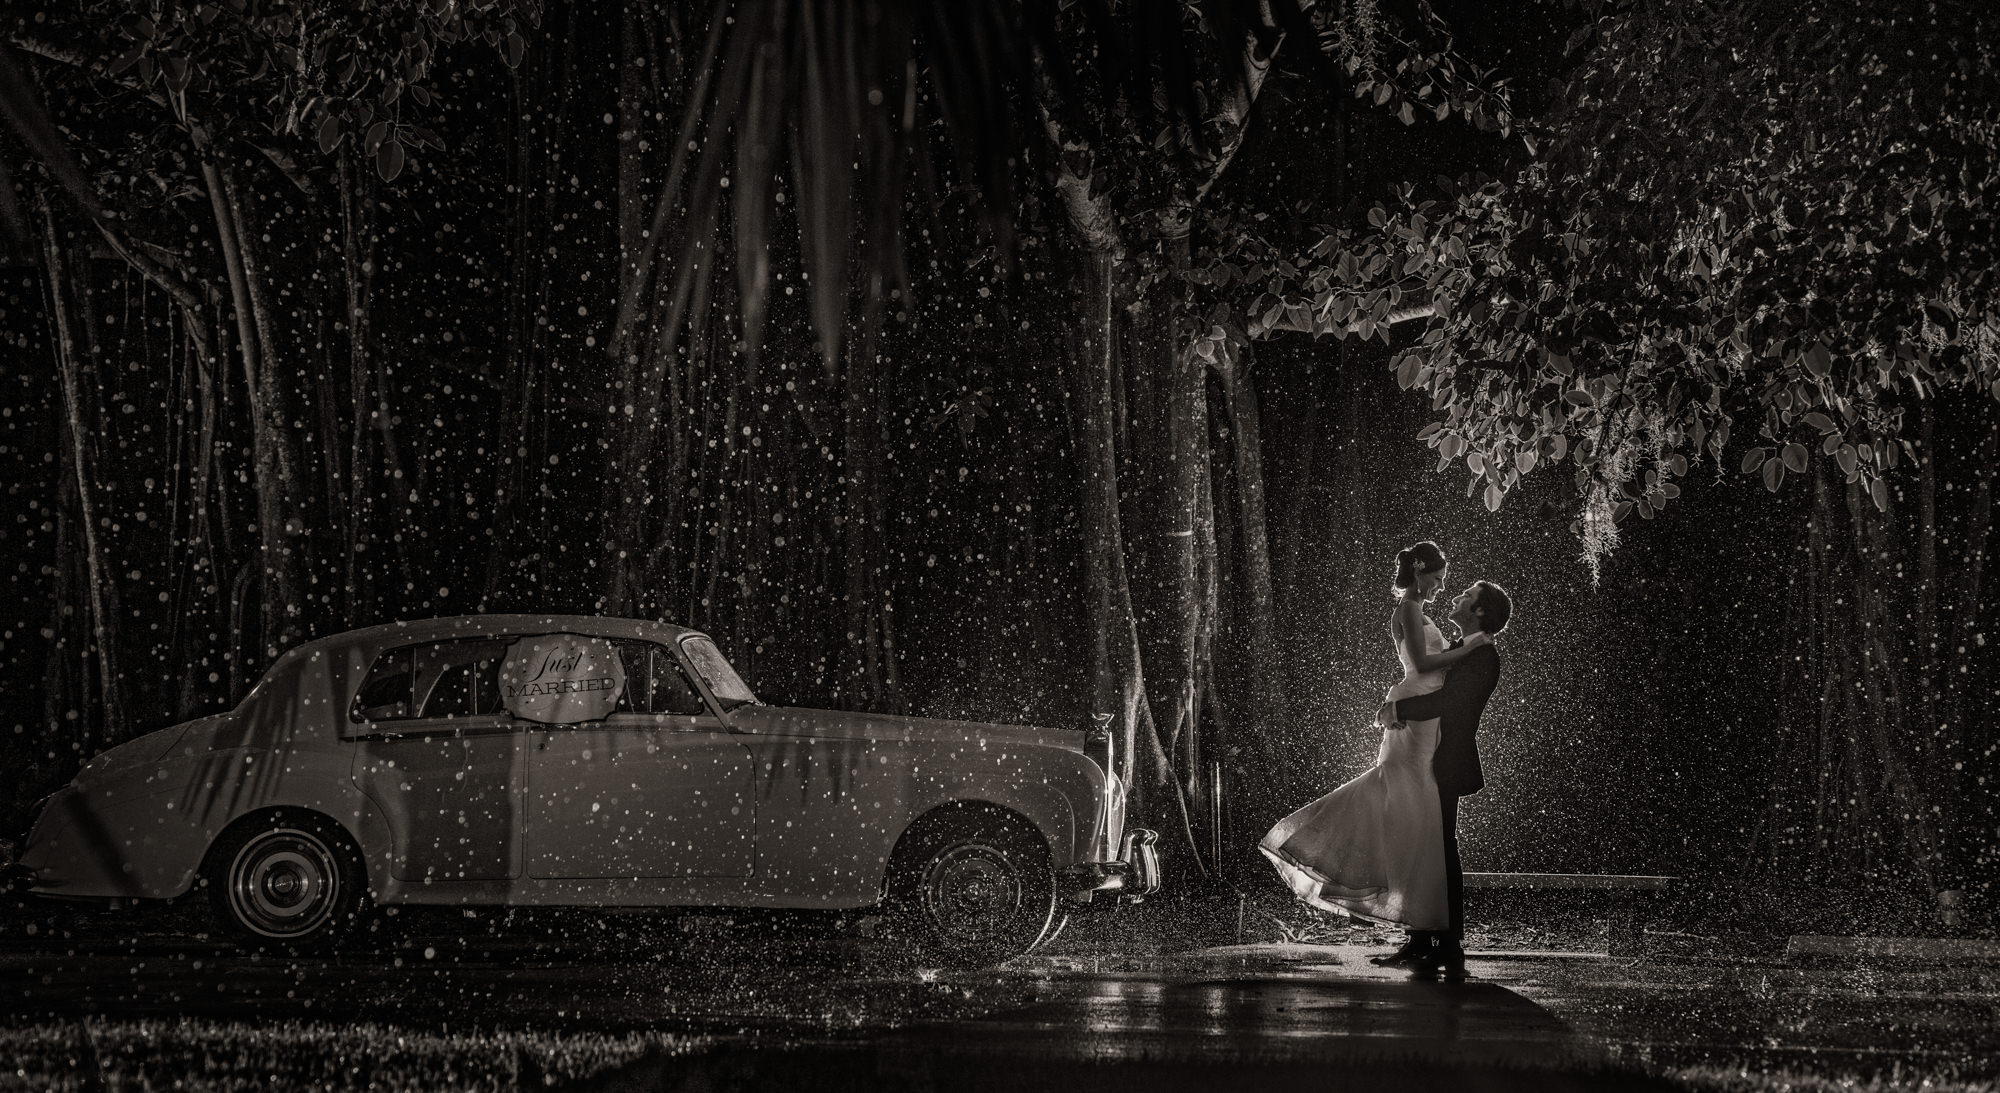 Photo of groom lifting bride up in the pouring rain by Roberto Valenzuela